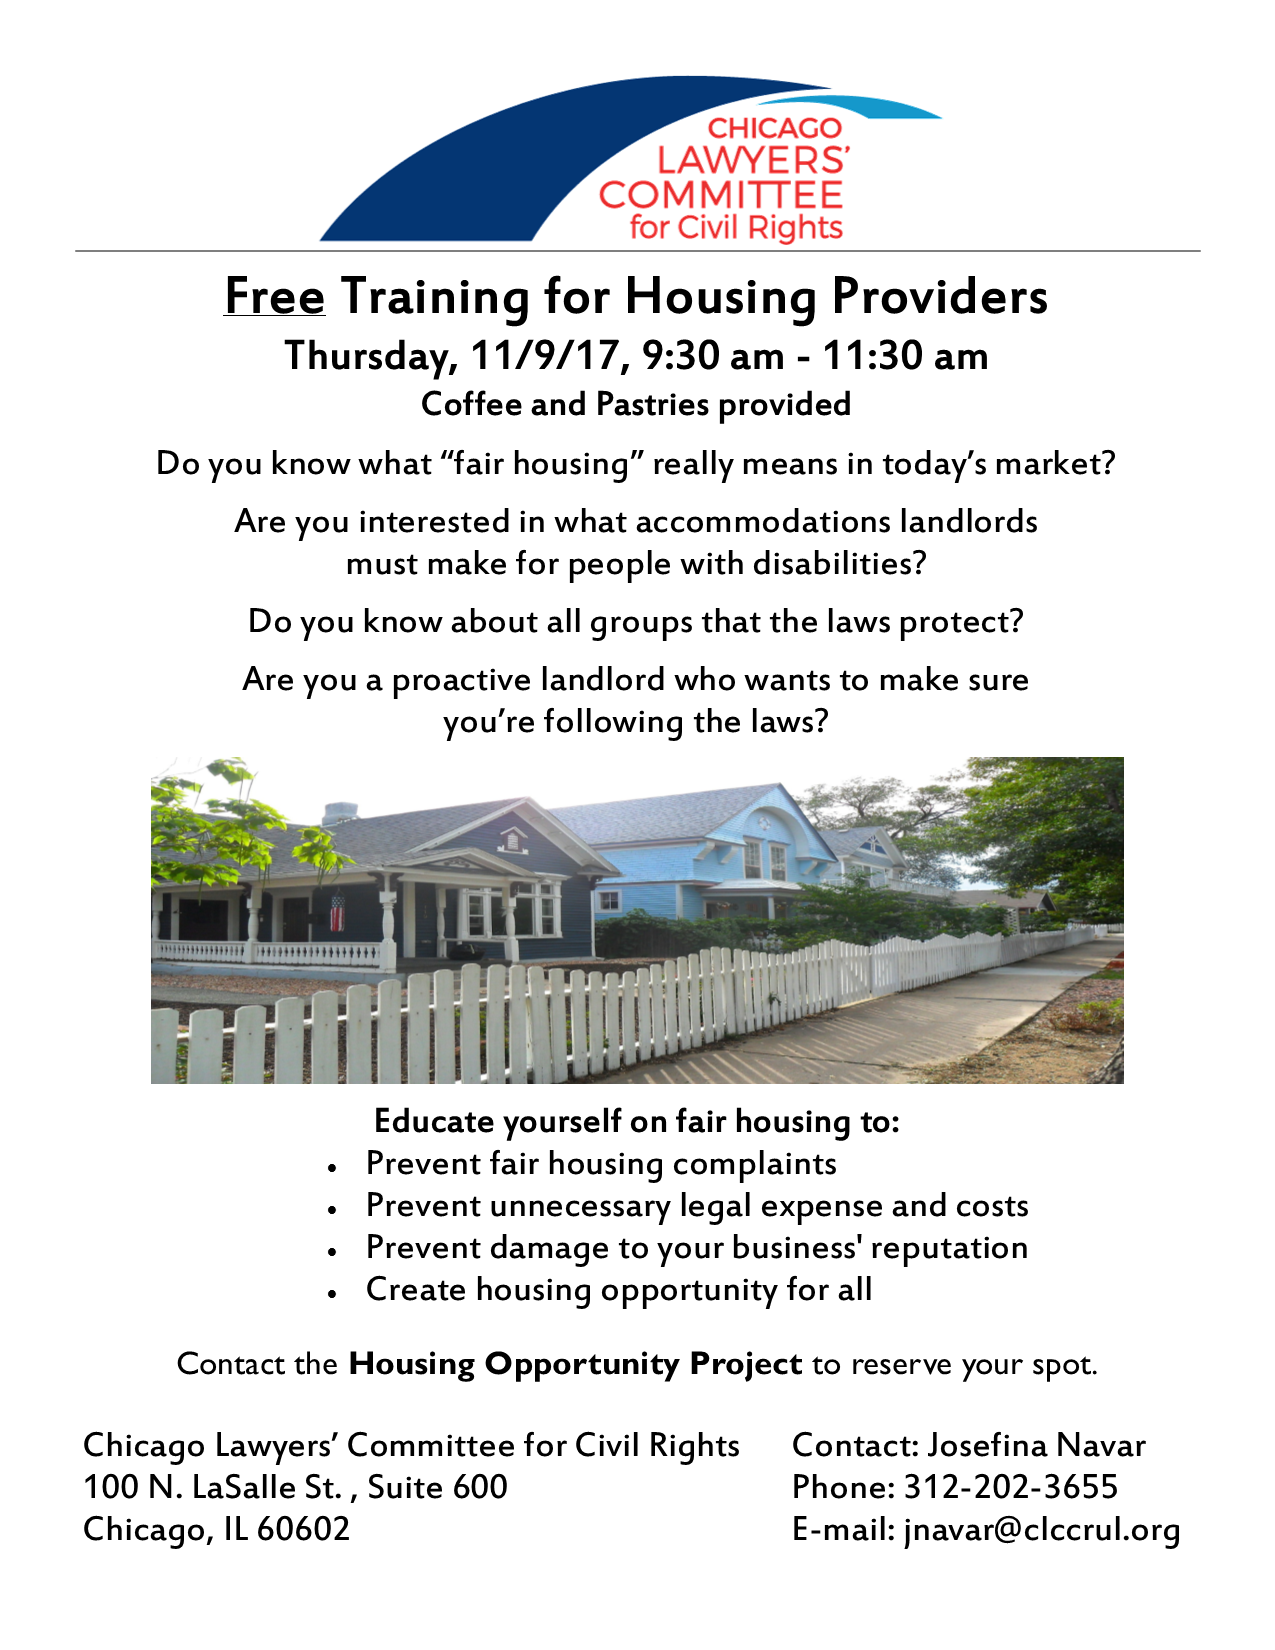 FH Training for Housing Providers 11.2017.png